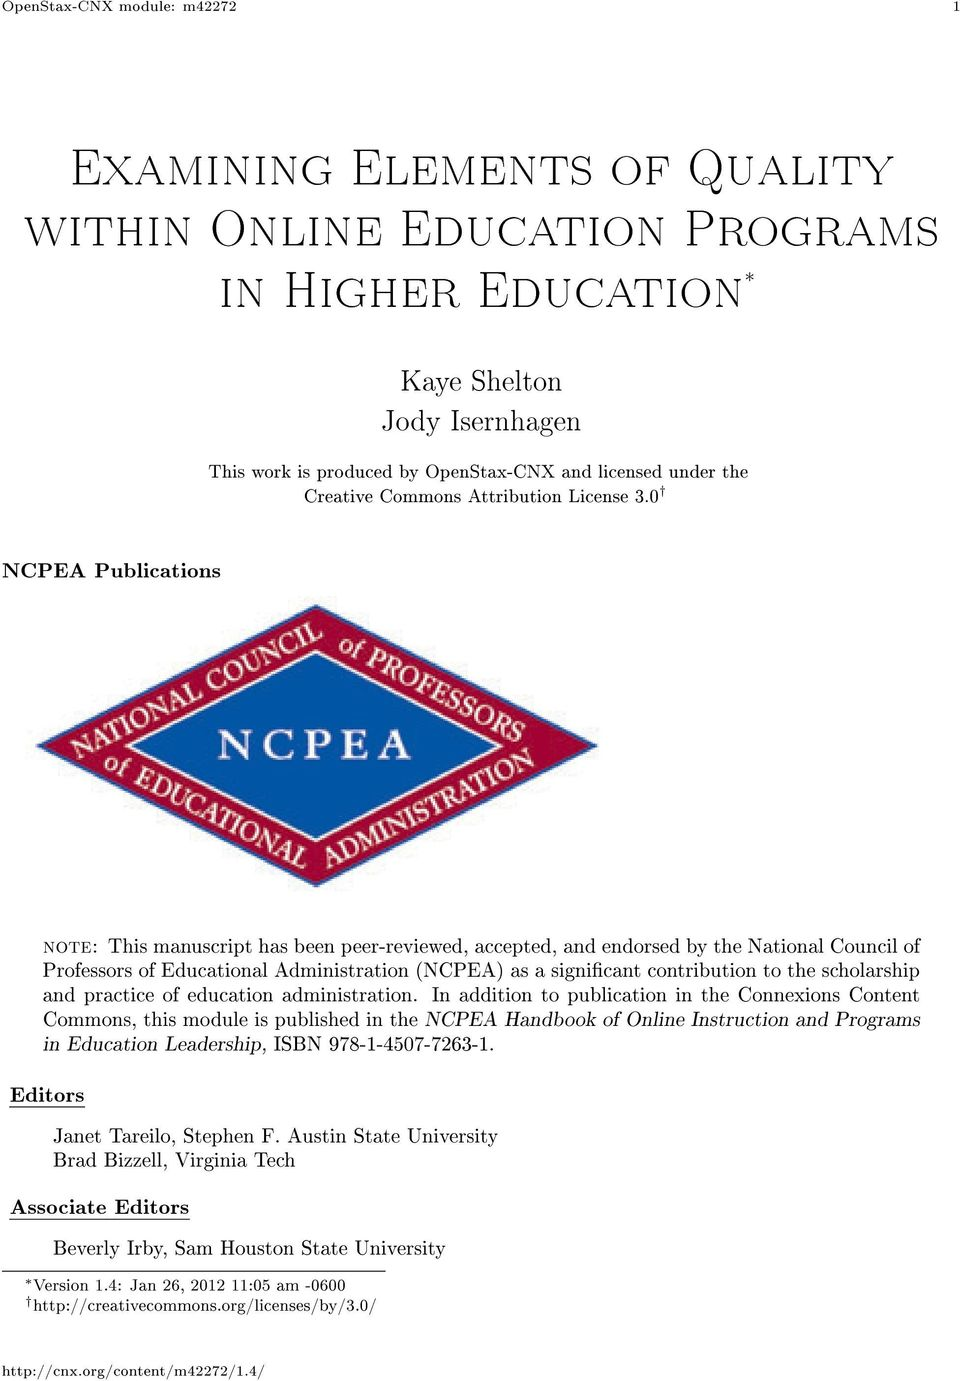 0 NCPEA Publications note: This manuscript has been peer-reviewed, accepted, and endorsed by the National Council of Professors of Educational Administration (NCPEA) as a signicant contribution to